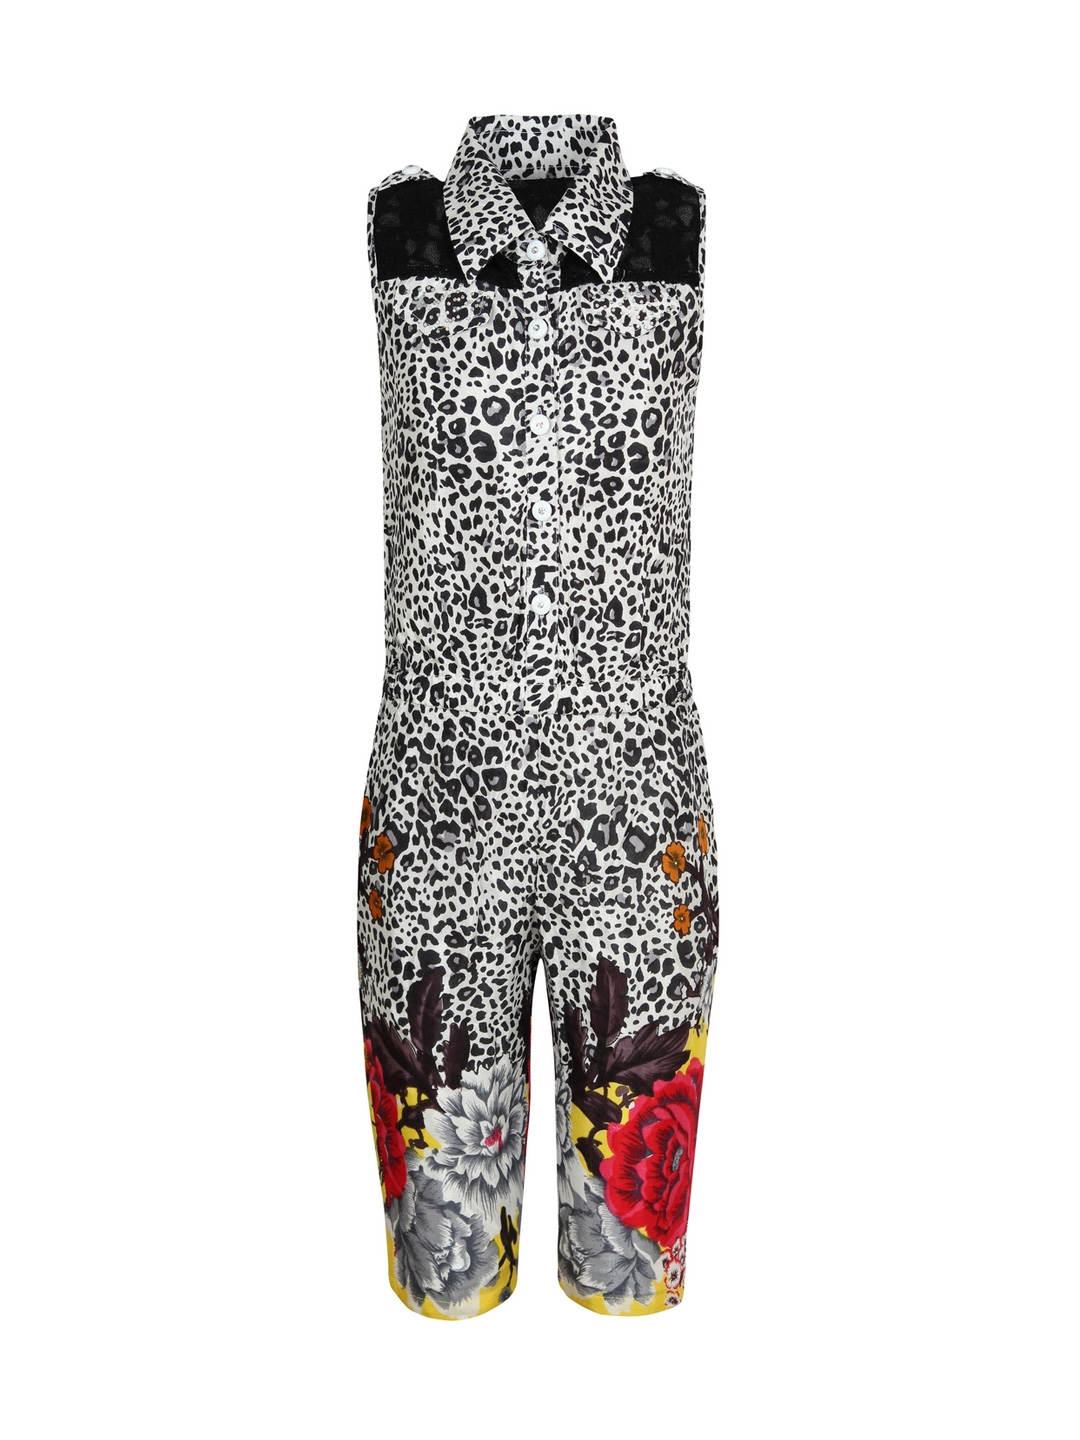 b2be197595a7 Buy Jazzup Girls Black   White Animal Print Jumpsuit - Jumpsuit for Girls  1288524